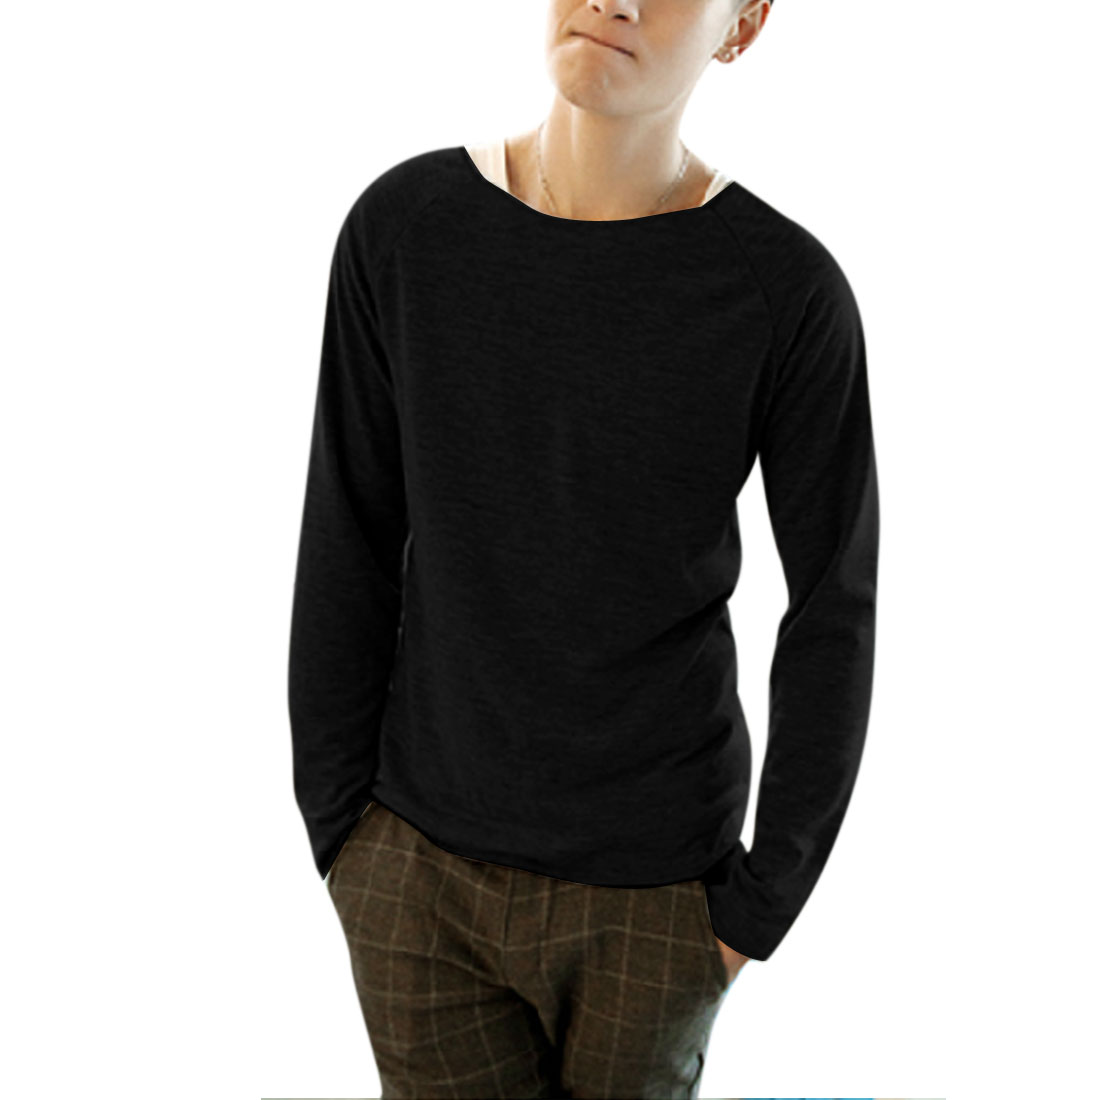 Men Stylish Soild Black Round Neck Pullover Loose Knit Wear M